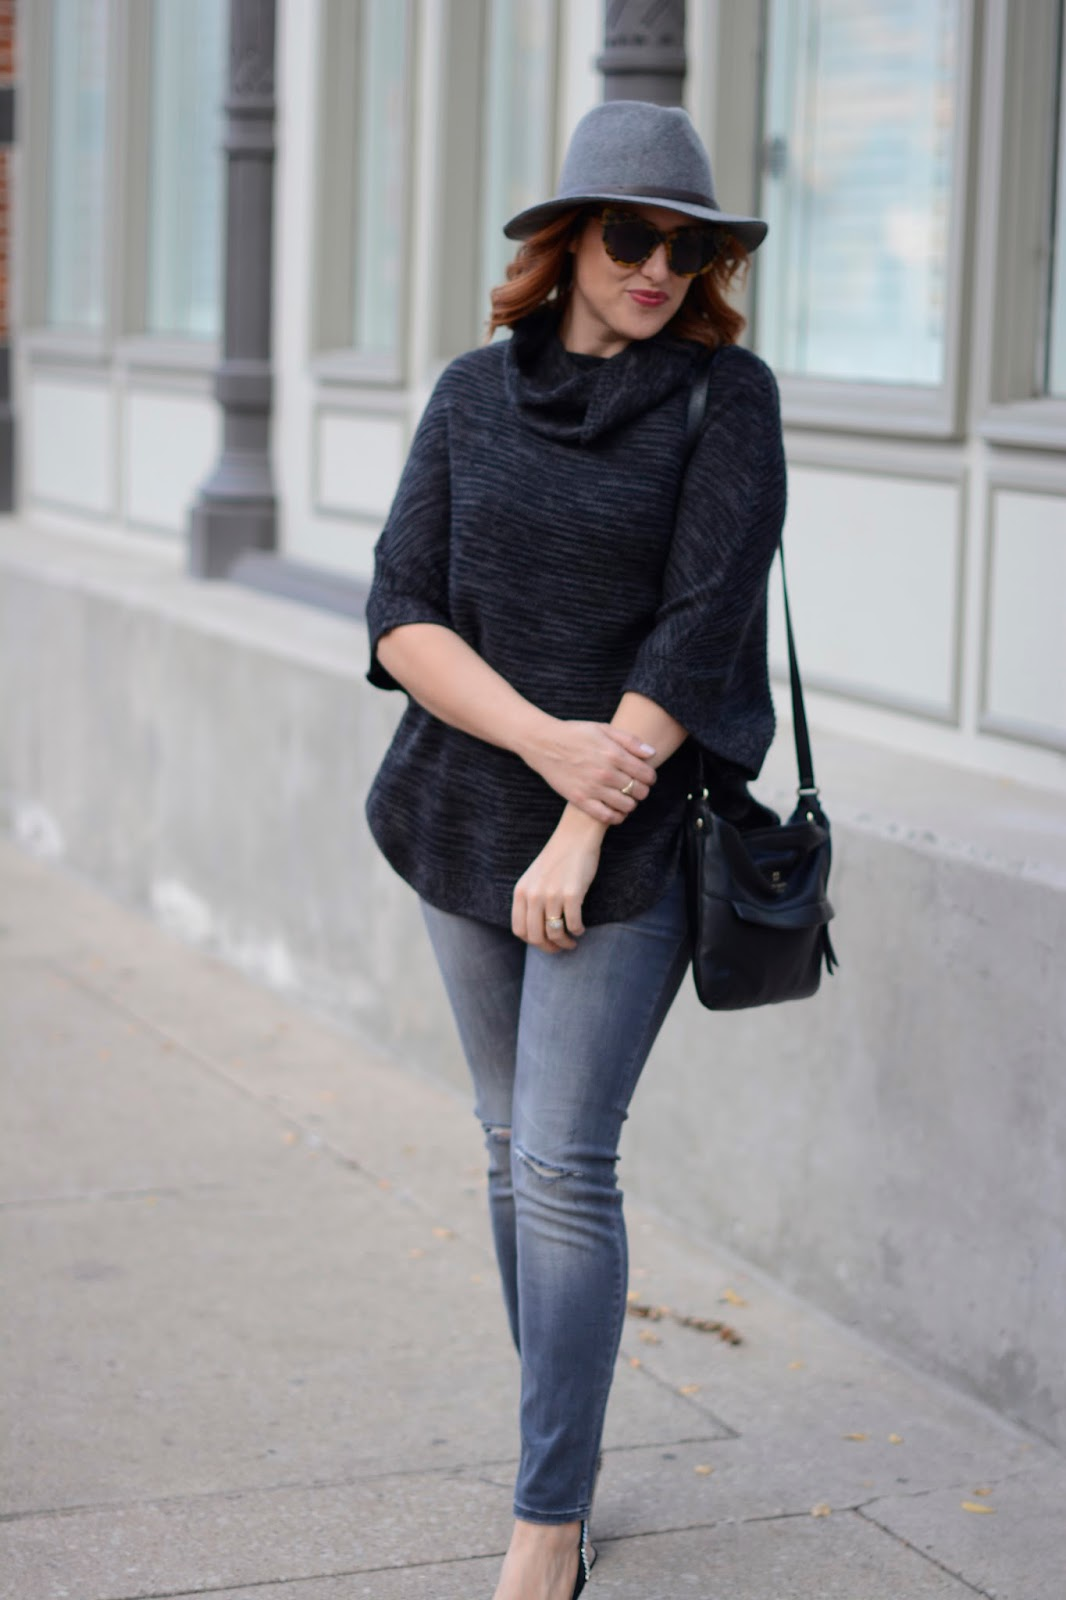 grey poncho, zara ripped jeans, kate spade black leather bag, gray fedora, sole society, karen walker sunglasses starburst